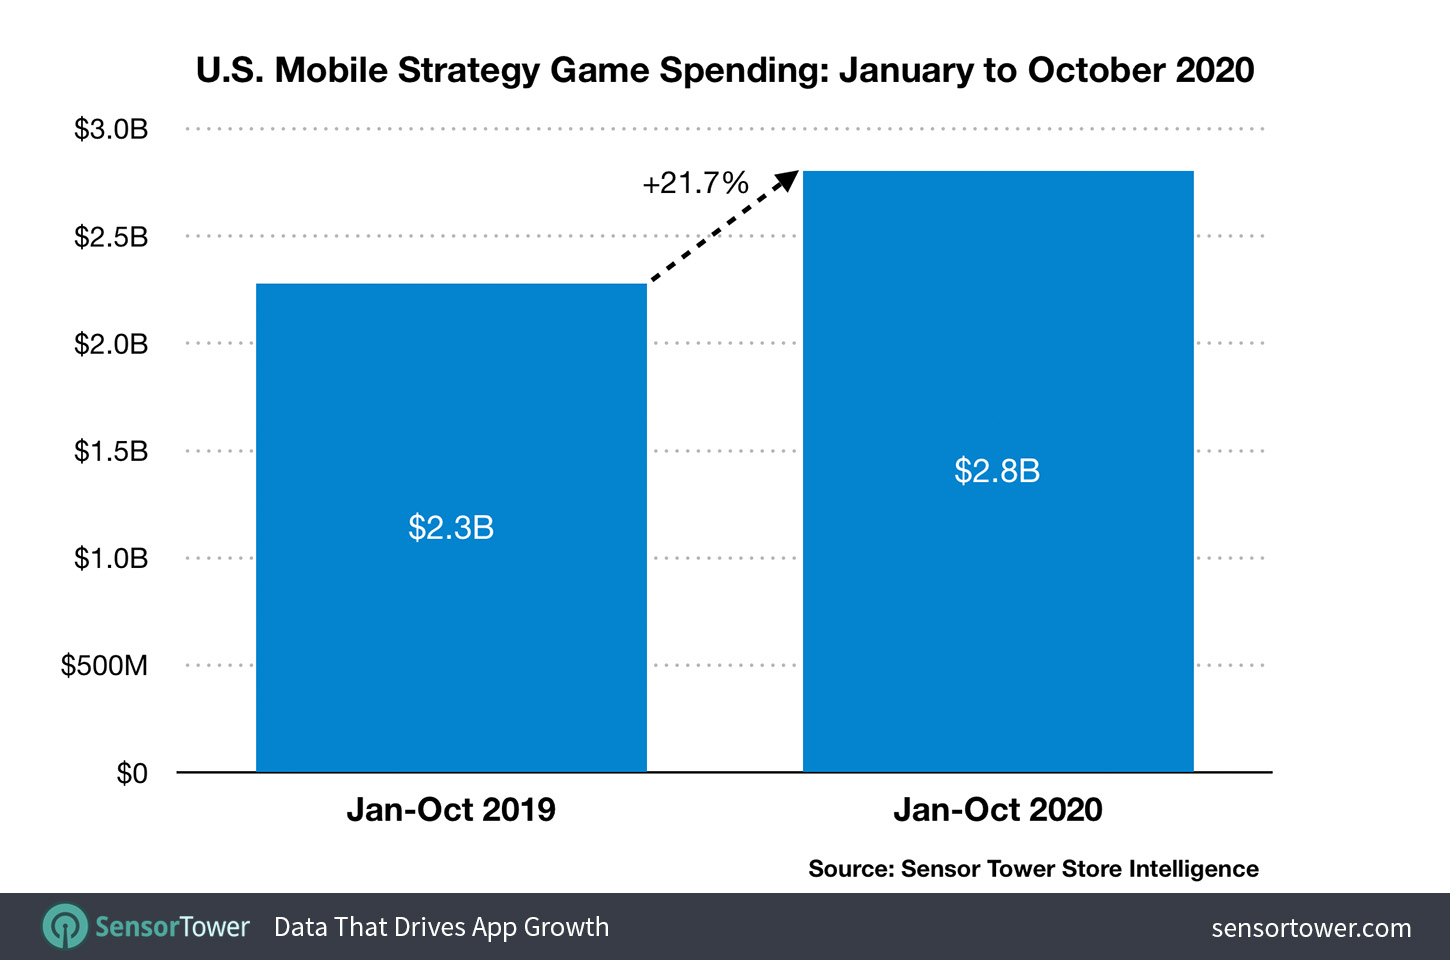 U.S. Mobile Strategy Game Spending Downloads: January to October 2020